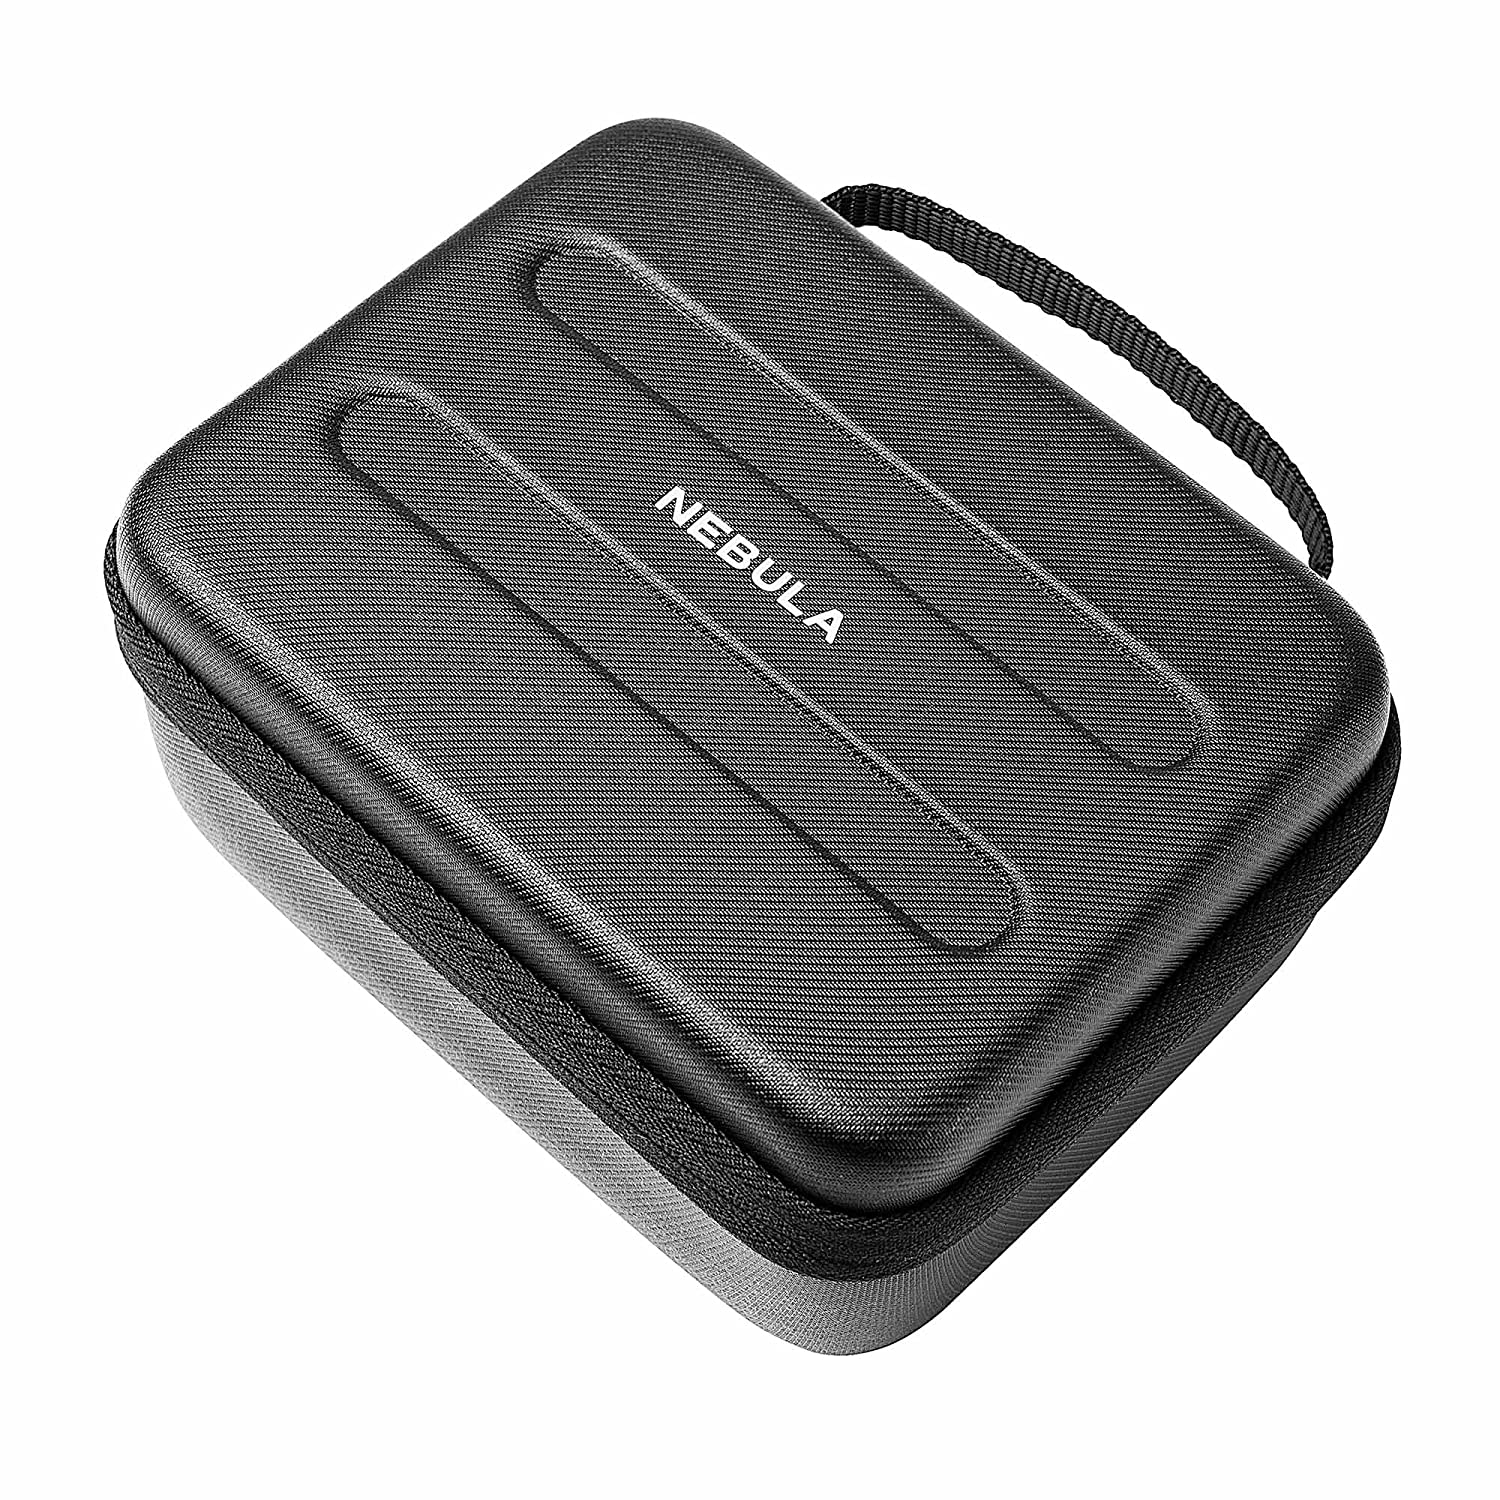 Nebula Capsule Official Travel Case, Customized for Nebula Capsule Pocket Projector, with PU Leather, Soft EVA Material, and Splash-Resistance Premium Protection Projector Carry Case Anker AK-D0701111